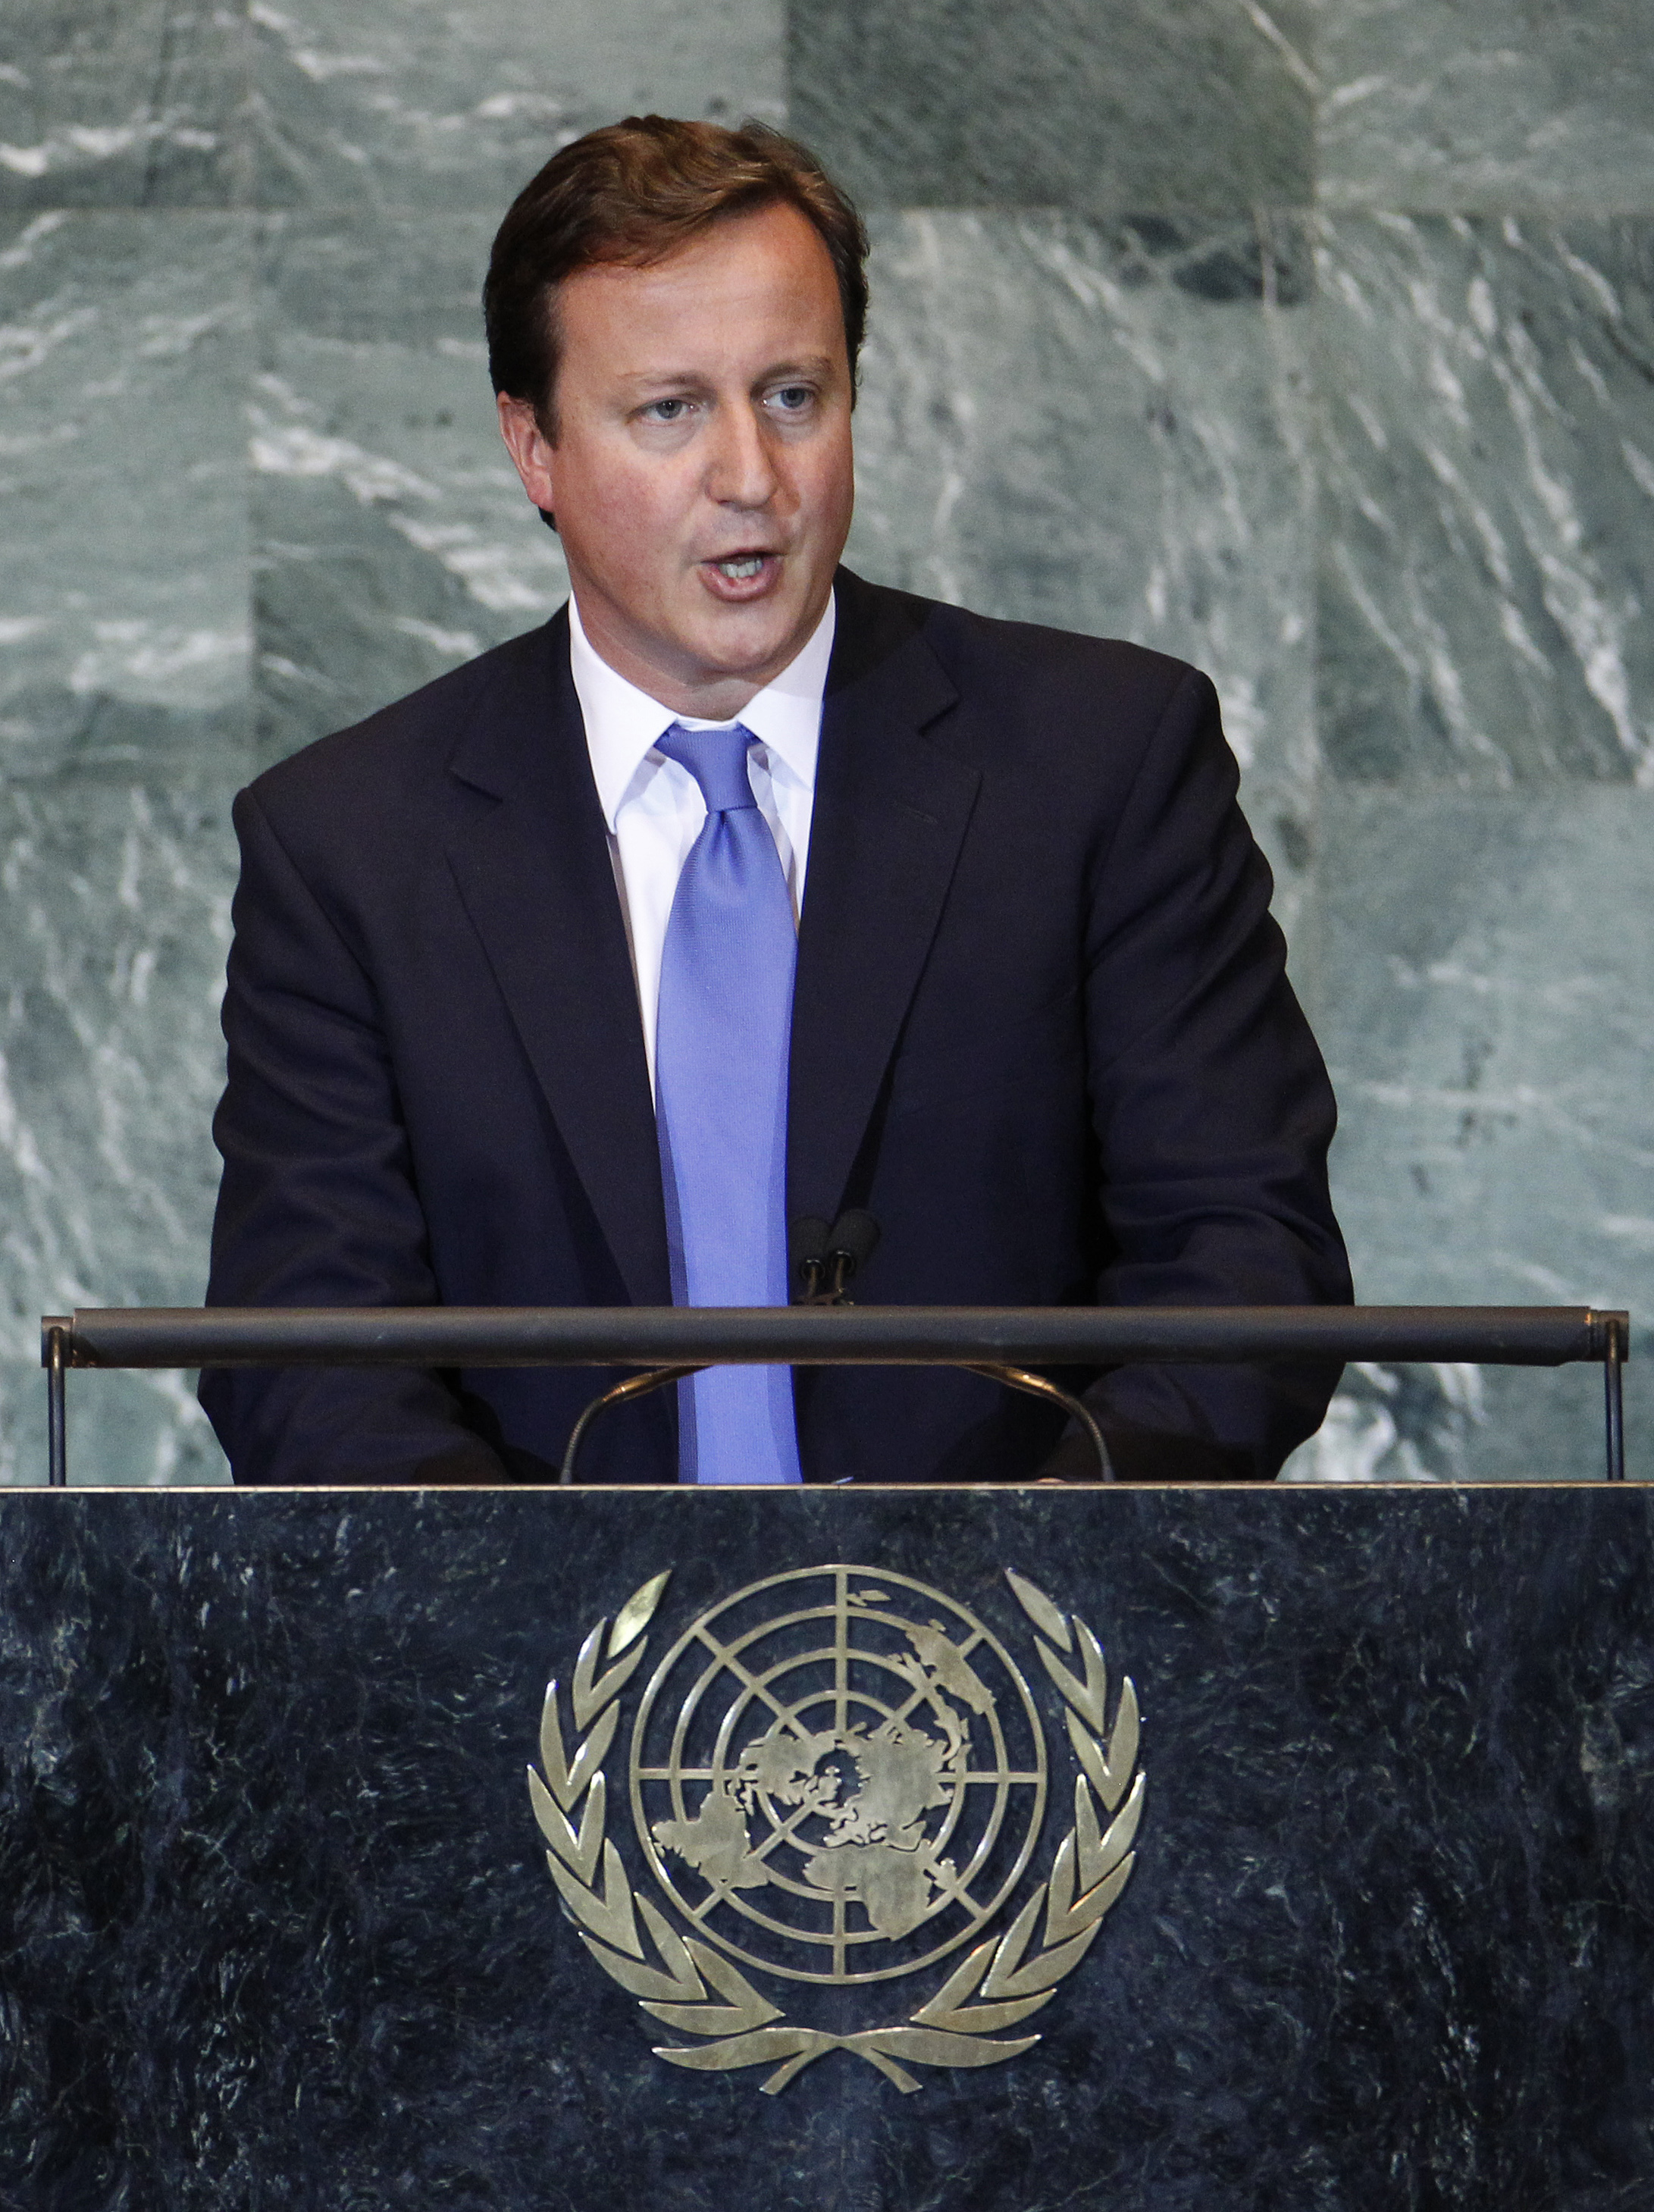 Britain's Prime Minister David Cameron. ©REUTERS/Chip East